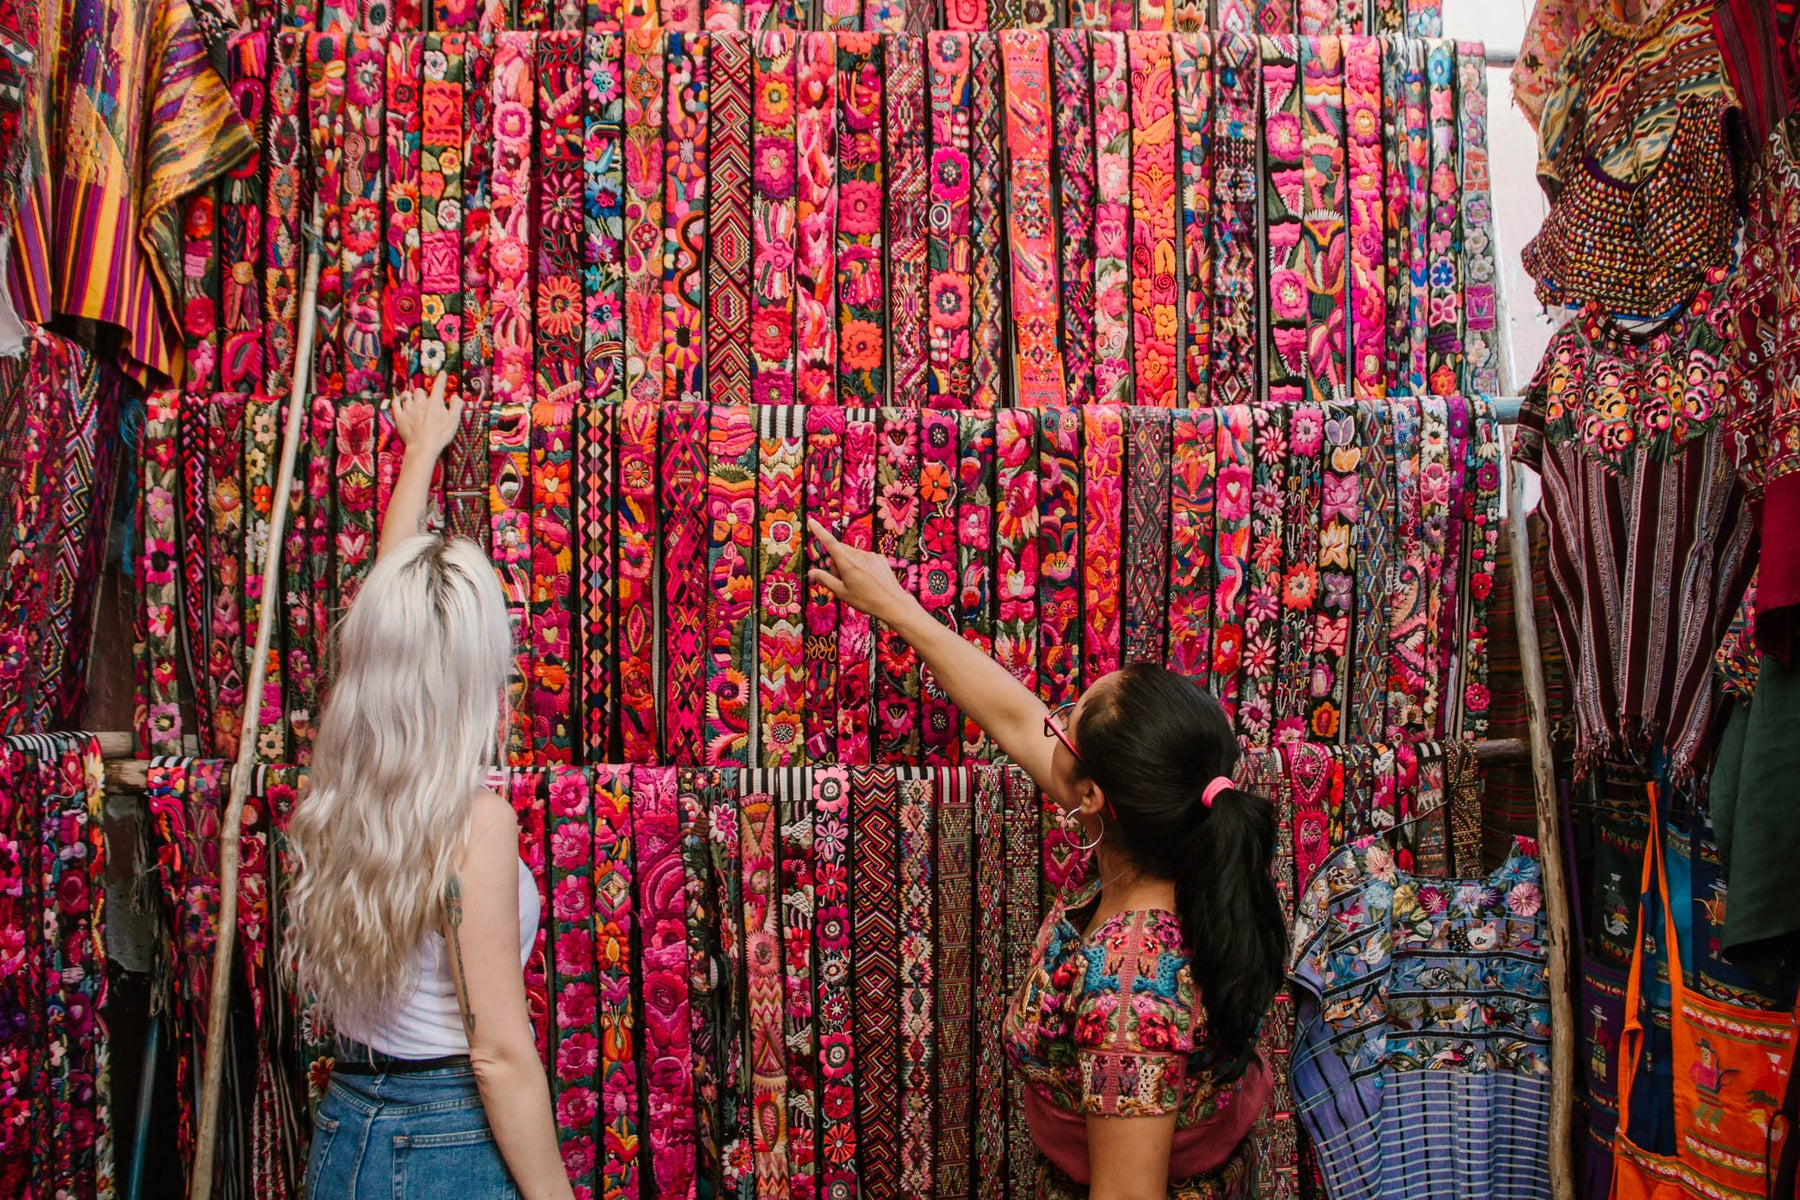 Hiptipico founder and employee enthusiastically select colorful fajas at the market, ethical fashion blogs, blogs about ethical and sustainable fashion, central america blogs, blogs about living in central america